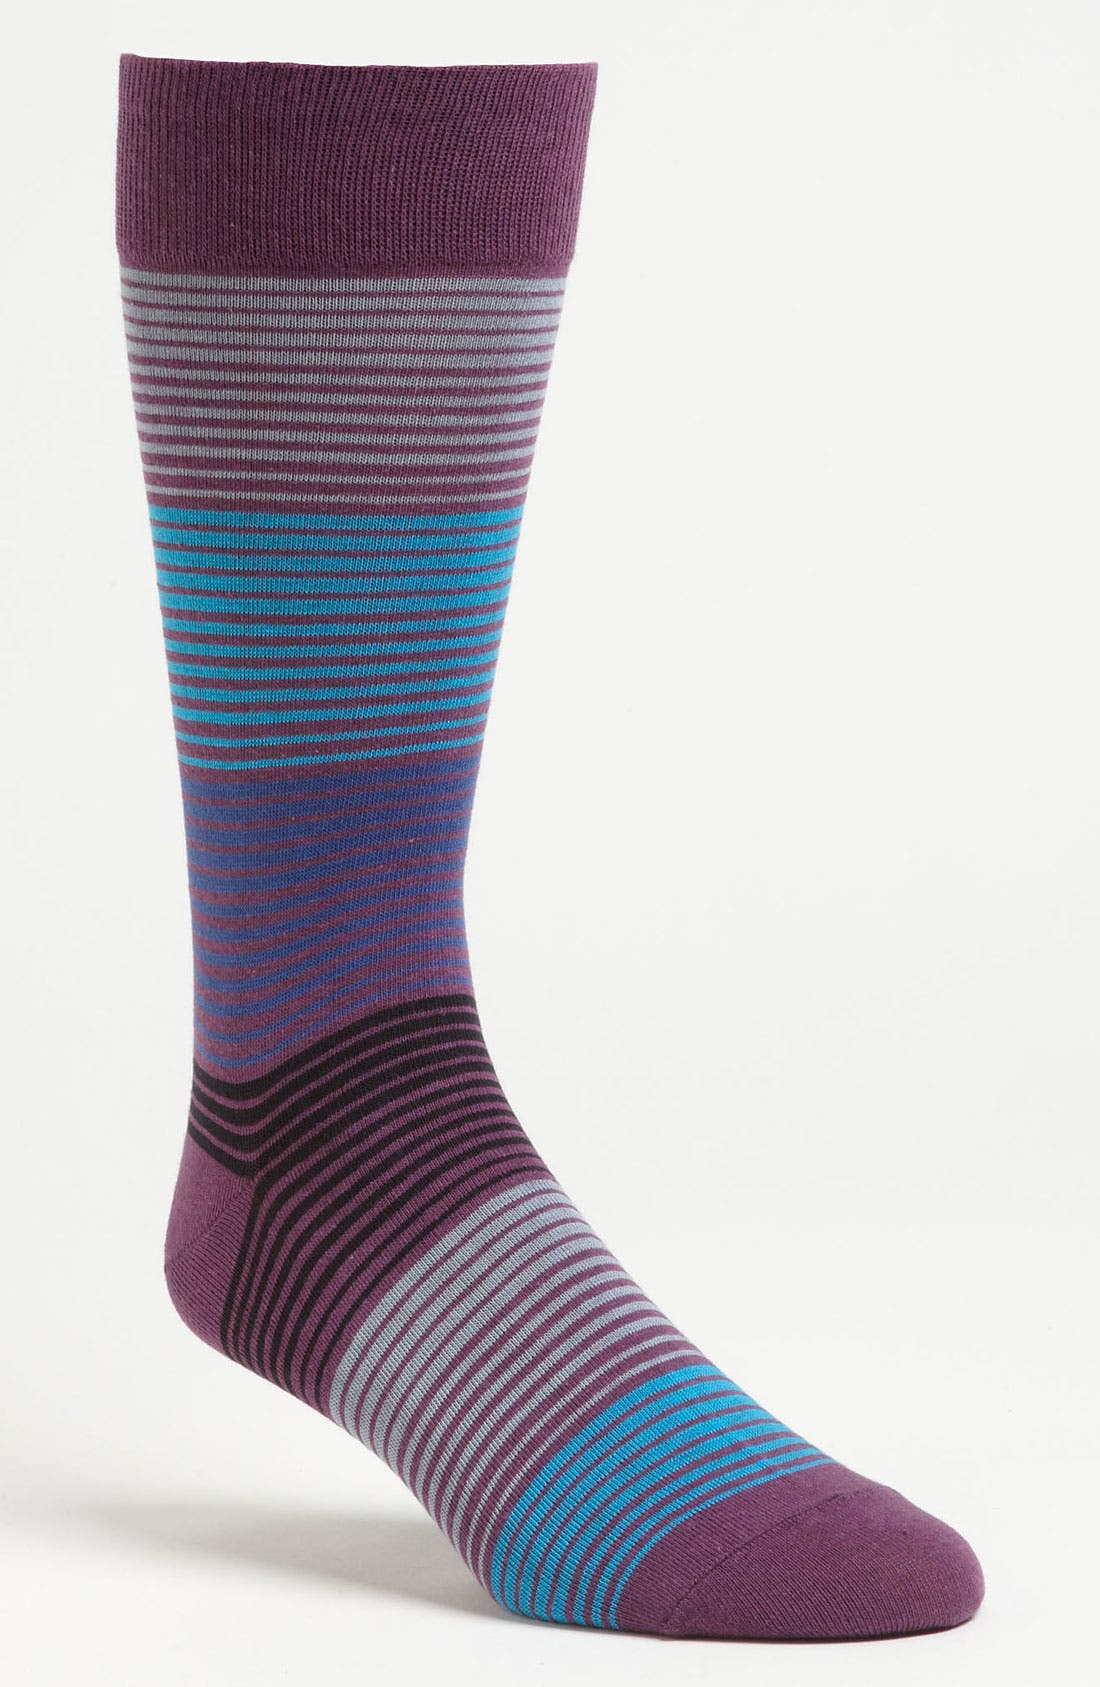 Main Image - Cole Haan 'Ombré' Socks (3 for $27)